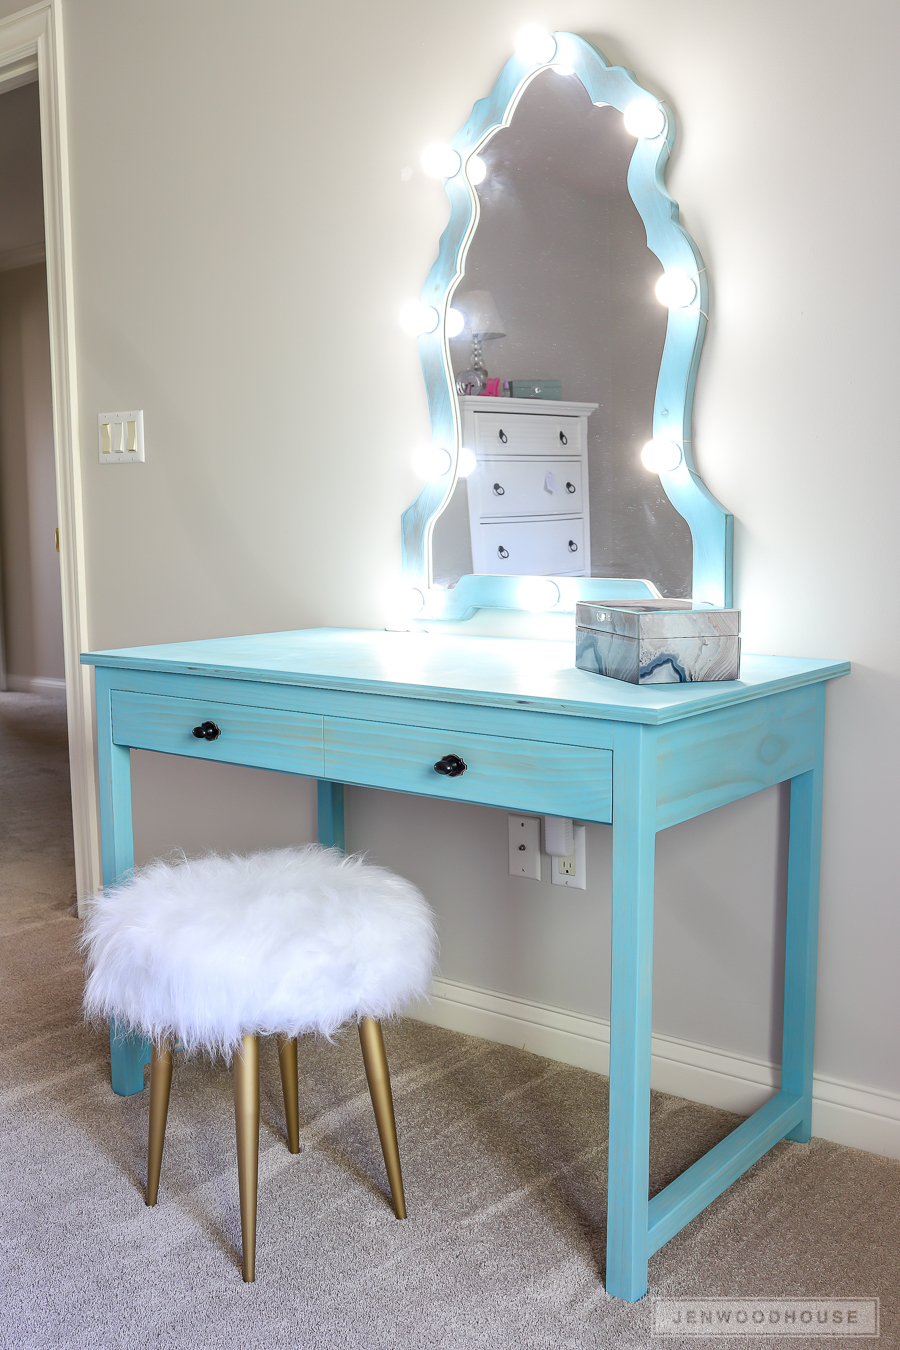 How to build a DIY makeup vanity with lights desk with